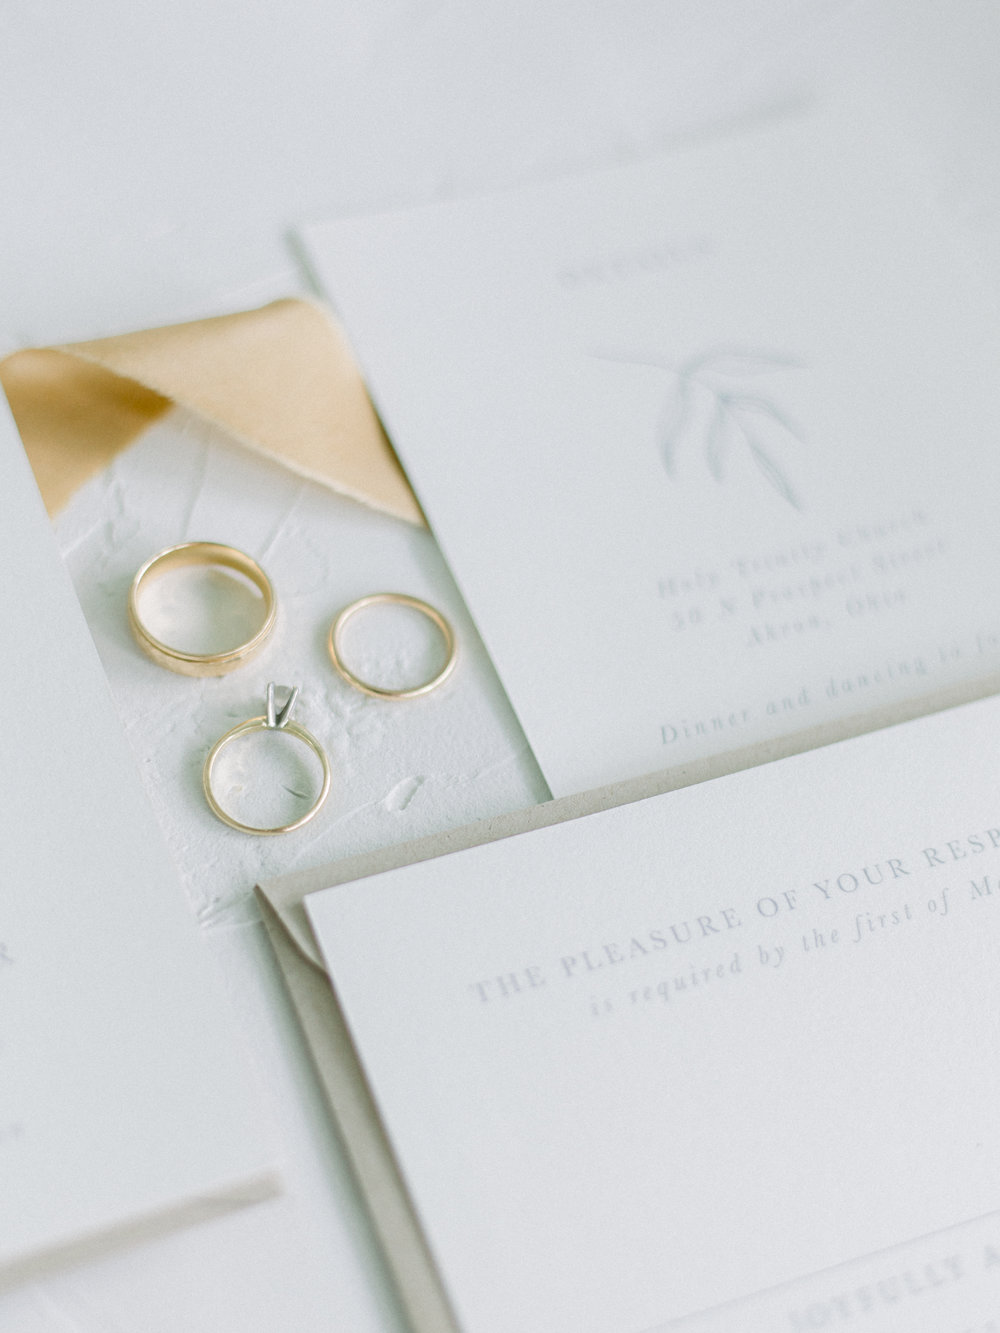 katie_graham_photography_the_hand_letter_shop